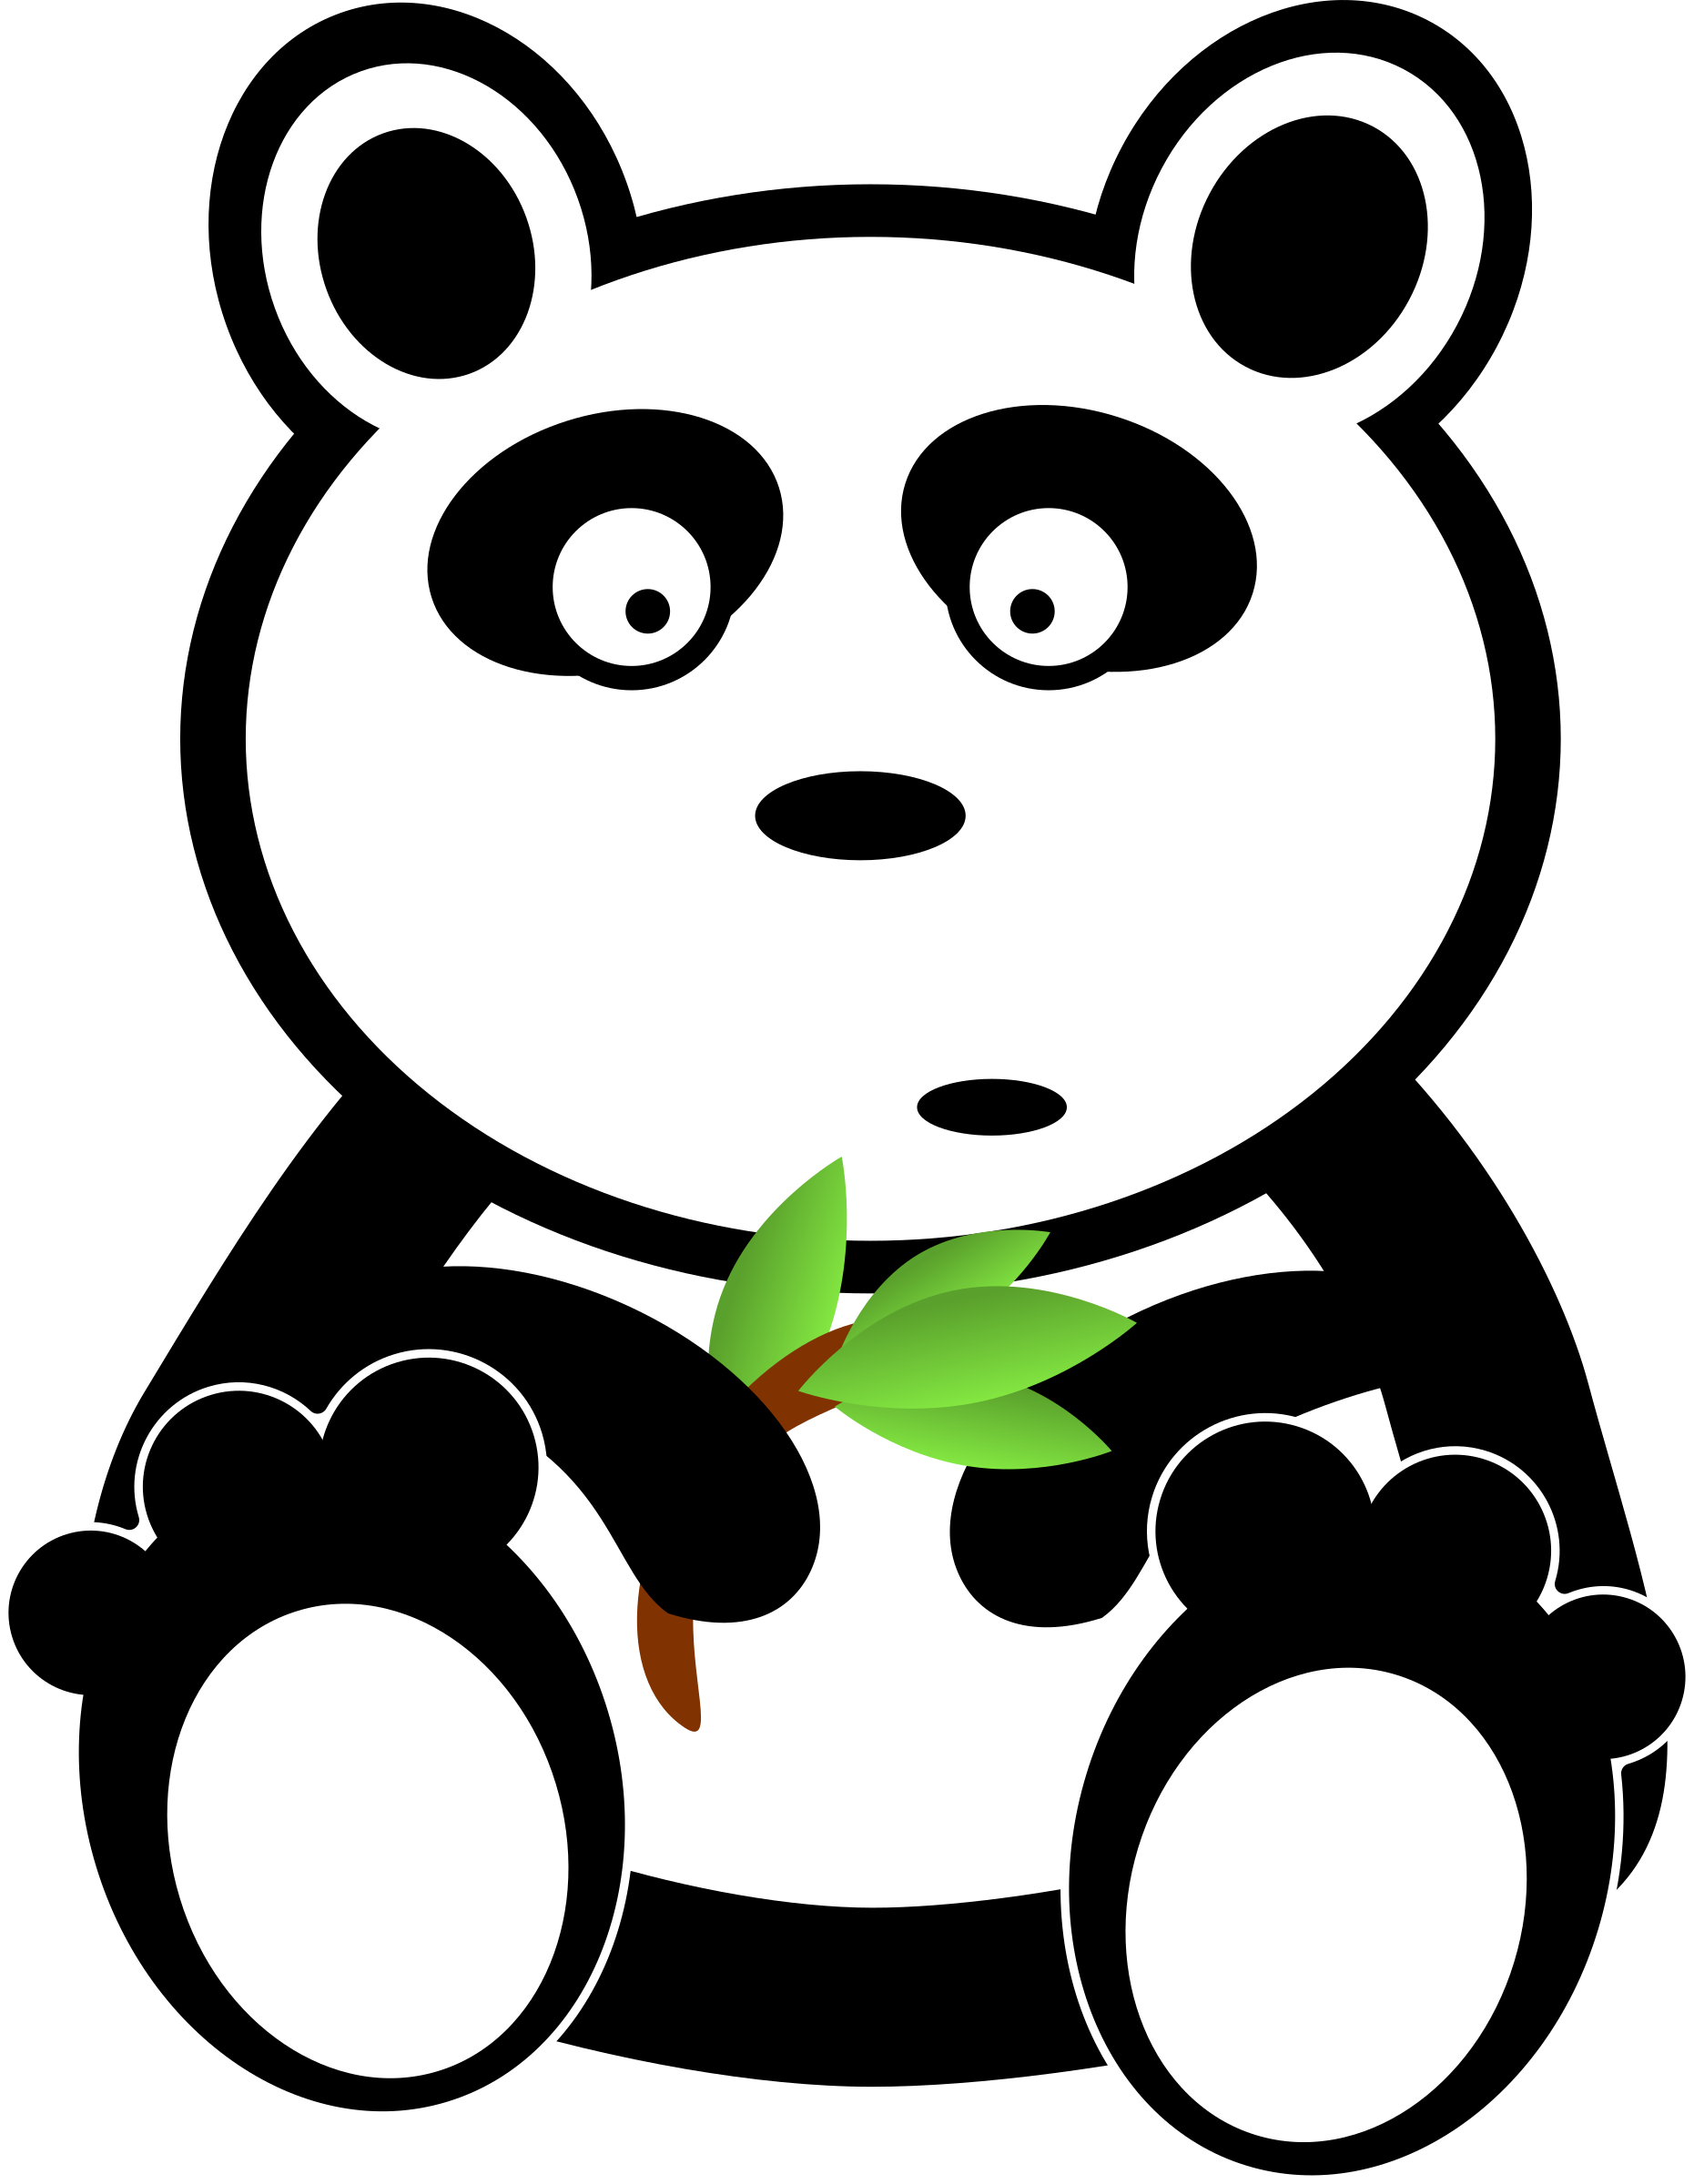 Panda with bamboo leaves by adam_lowe